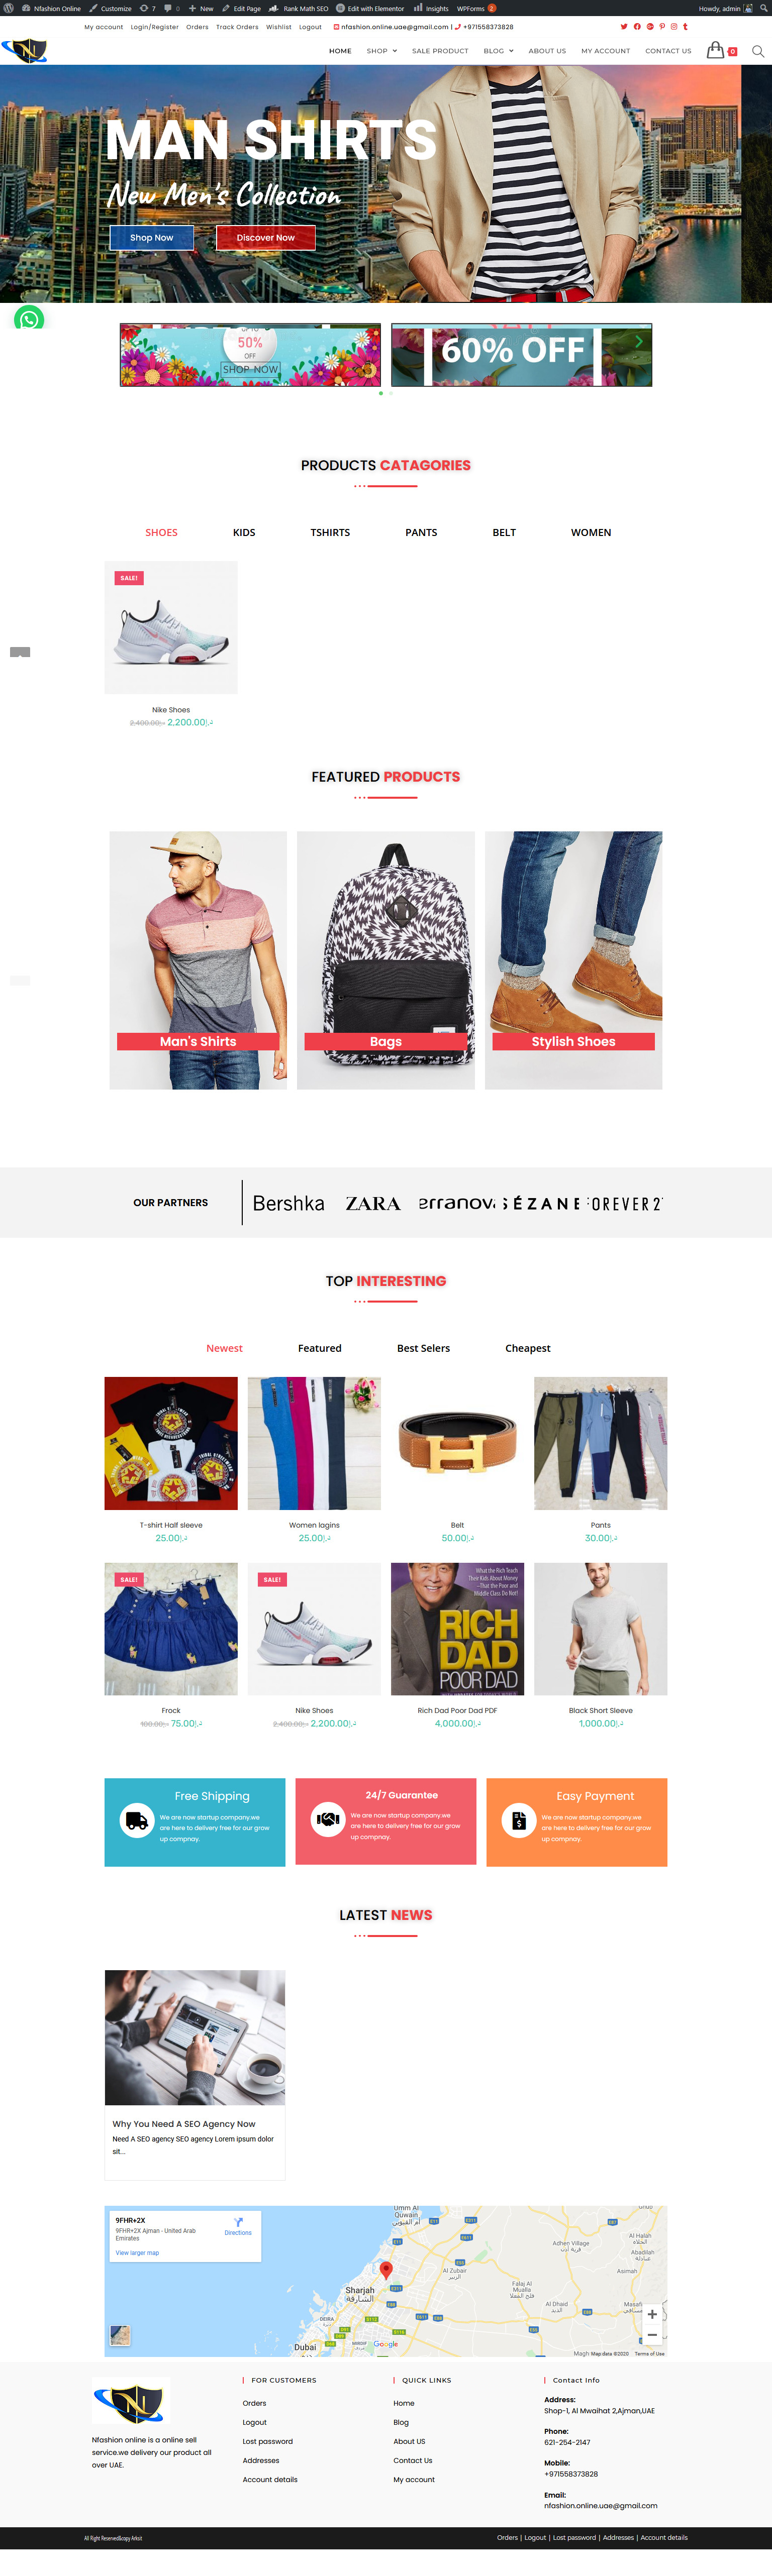 Build ecommerce website in wordpress woocommerce